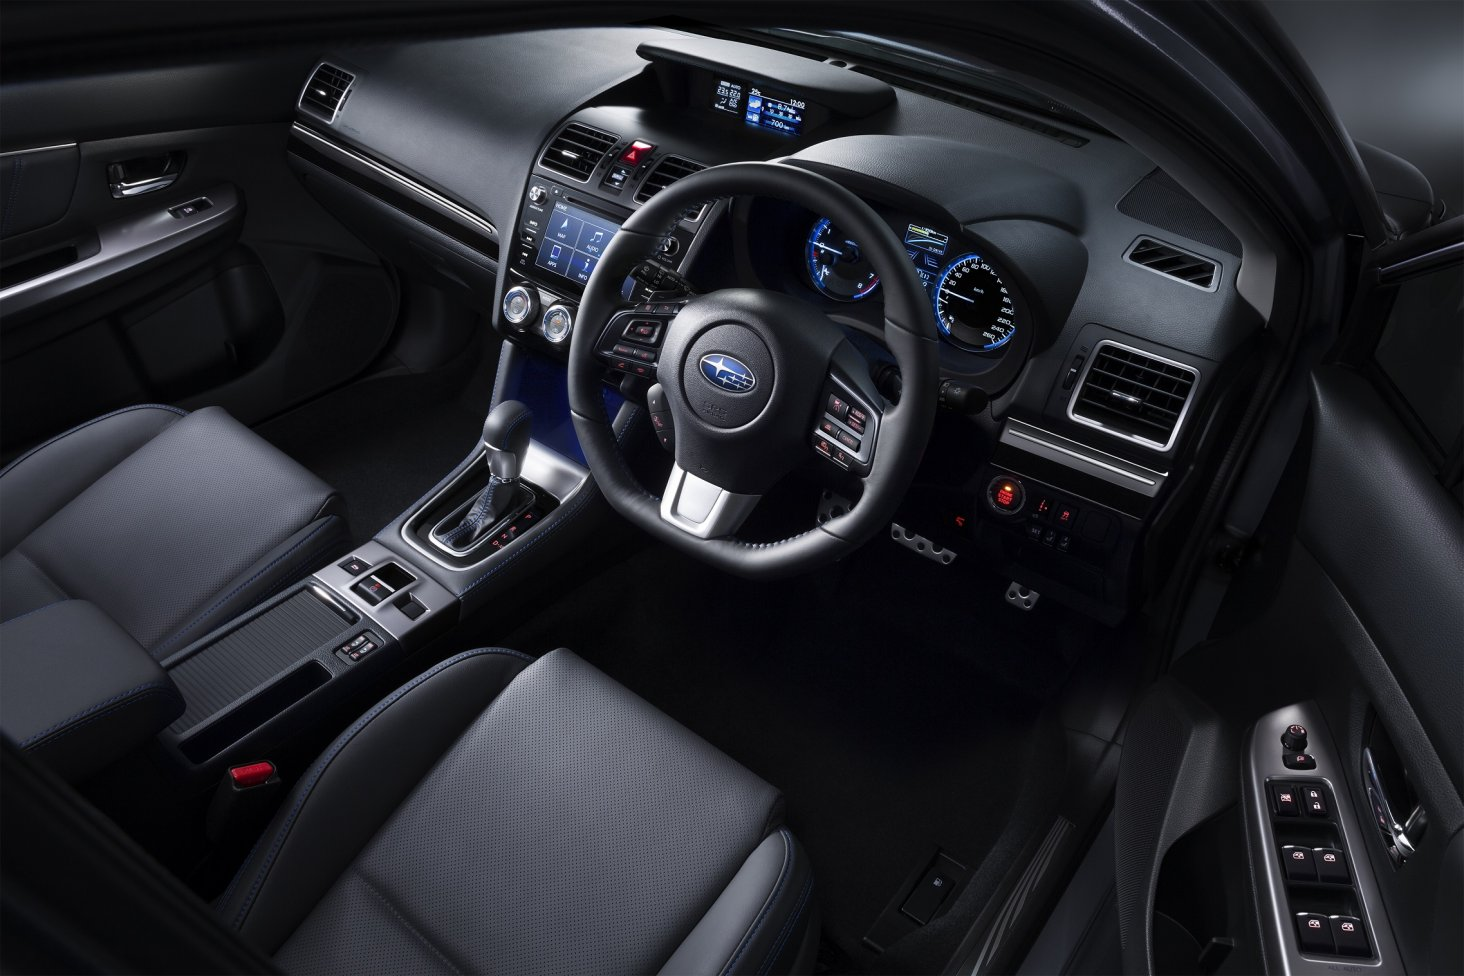 The Subaru Levorg cabin looks smart with a blue stitched interior trim.